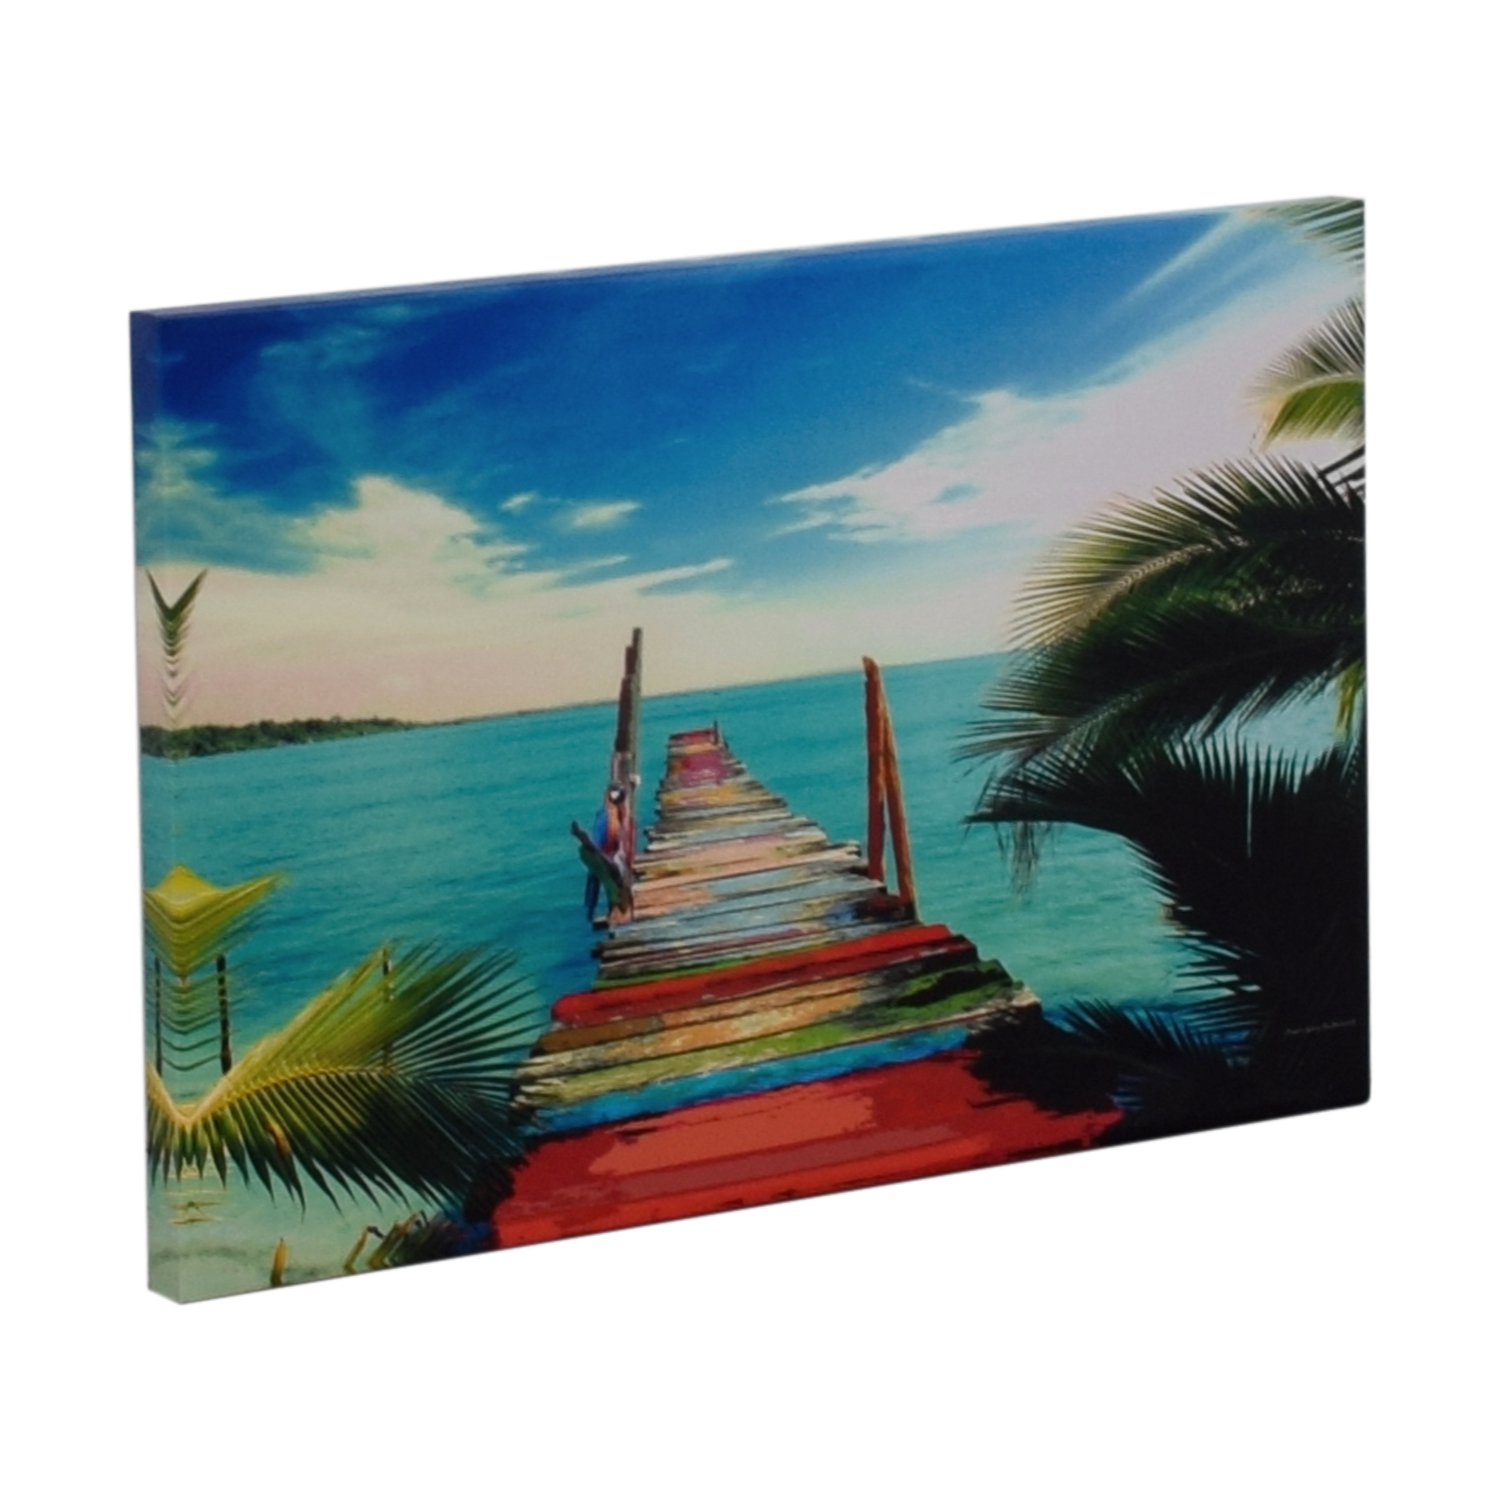 James Gary Richmond Key West Tropical Print on Canvas second hand